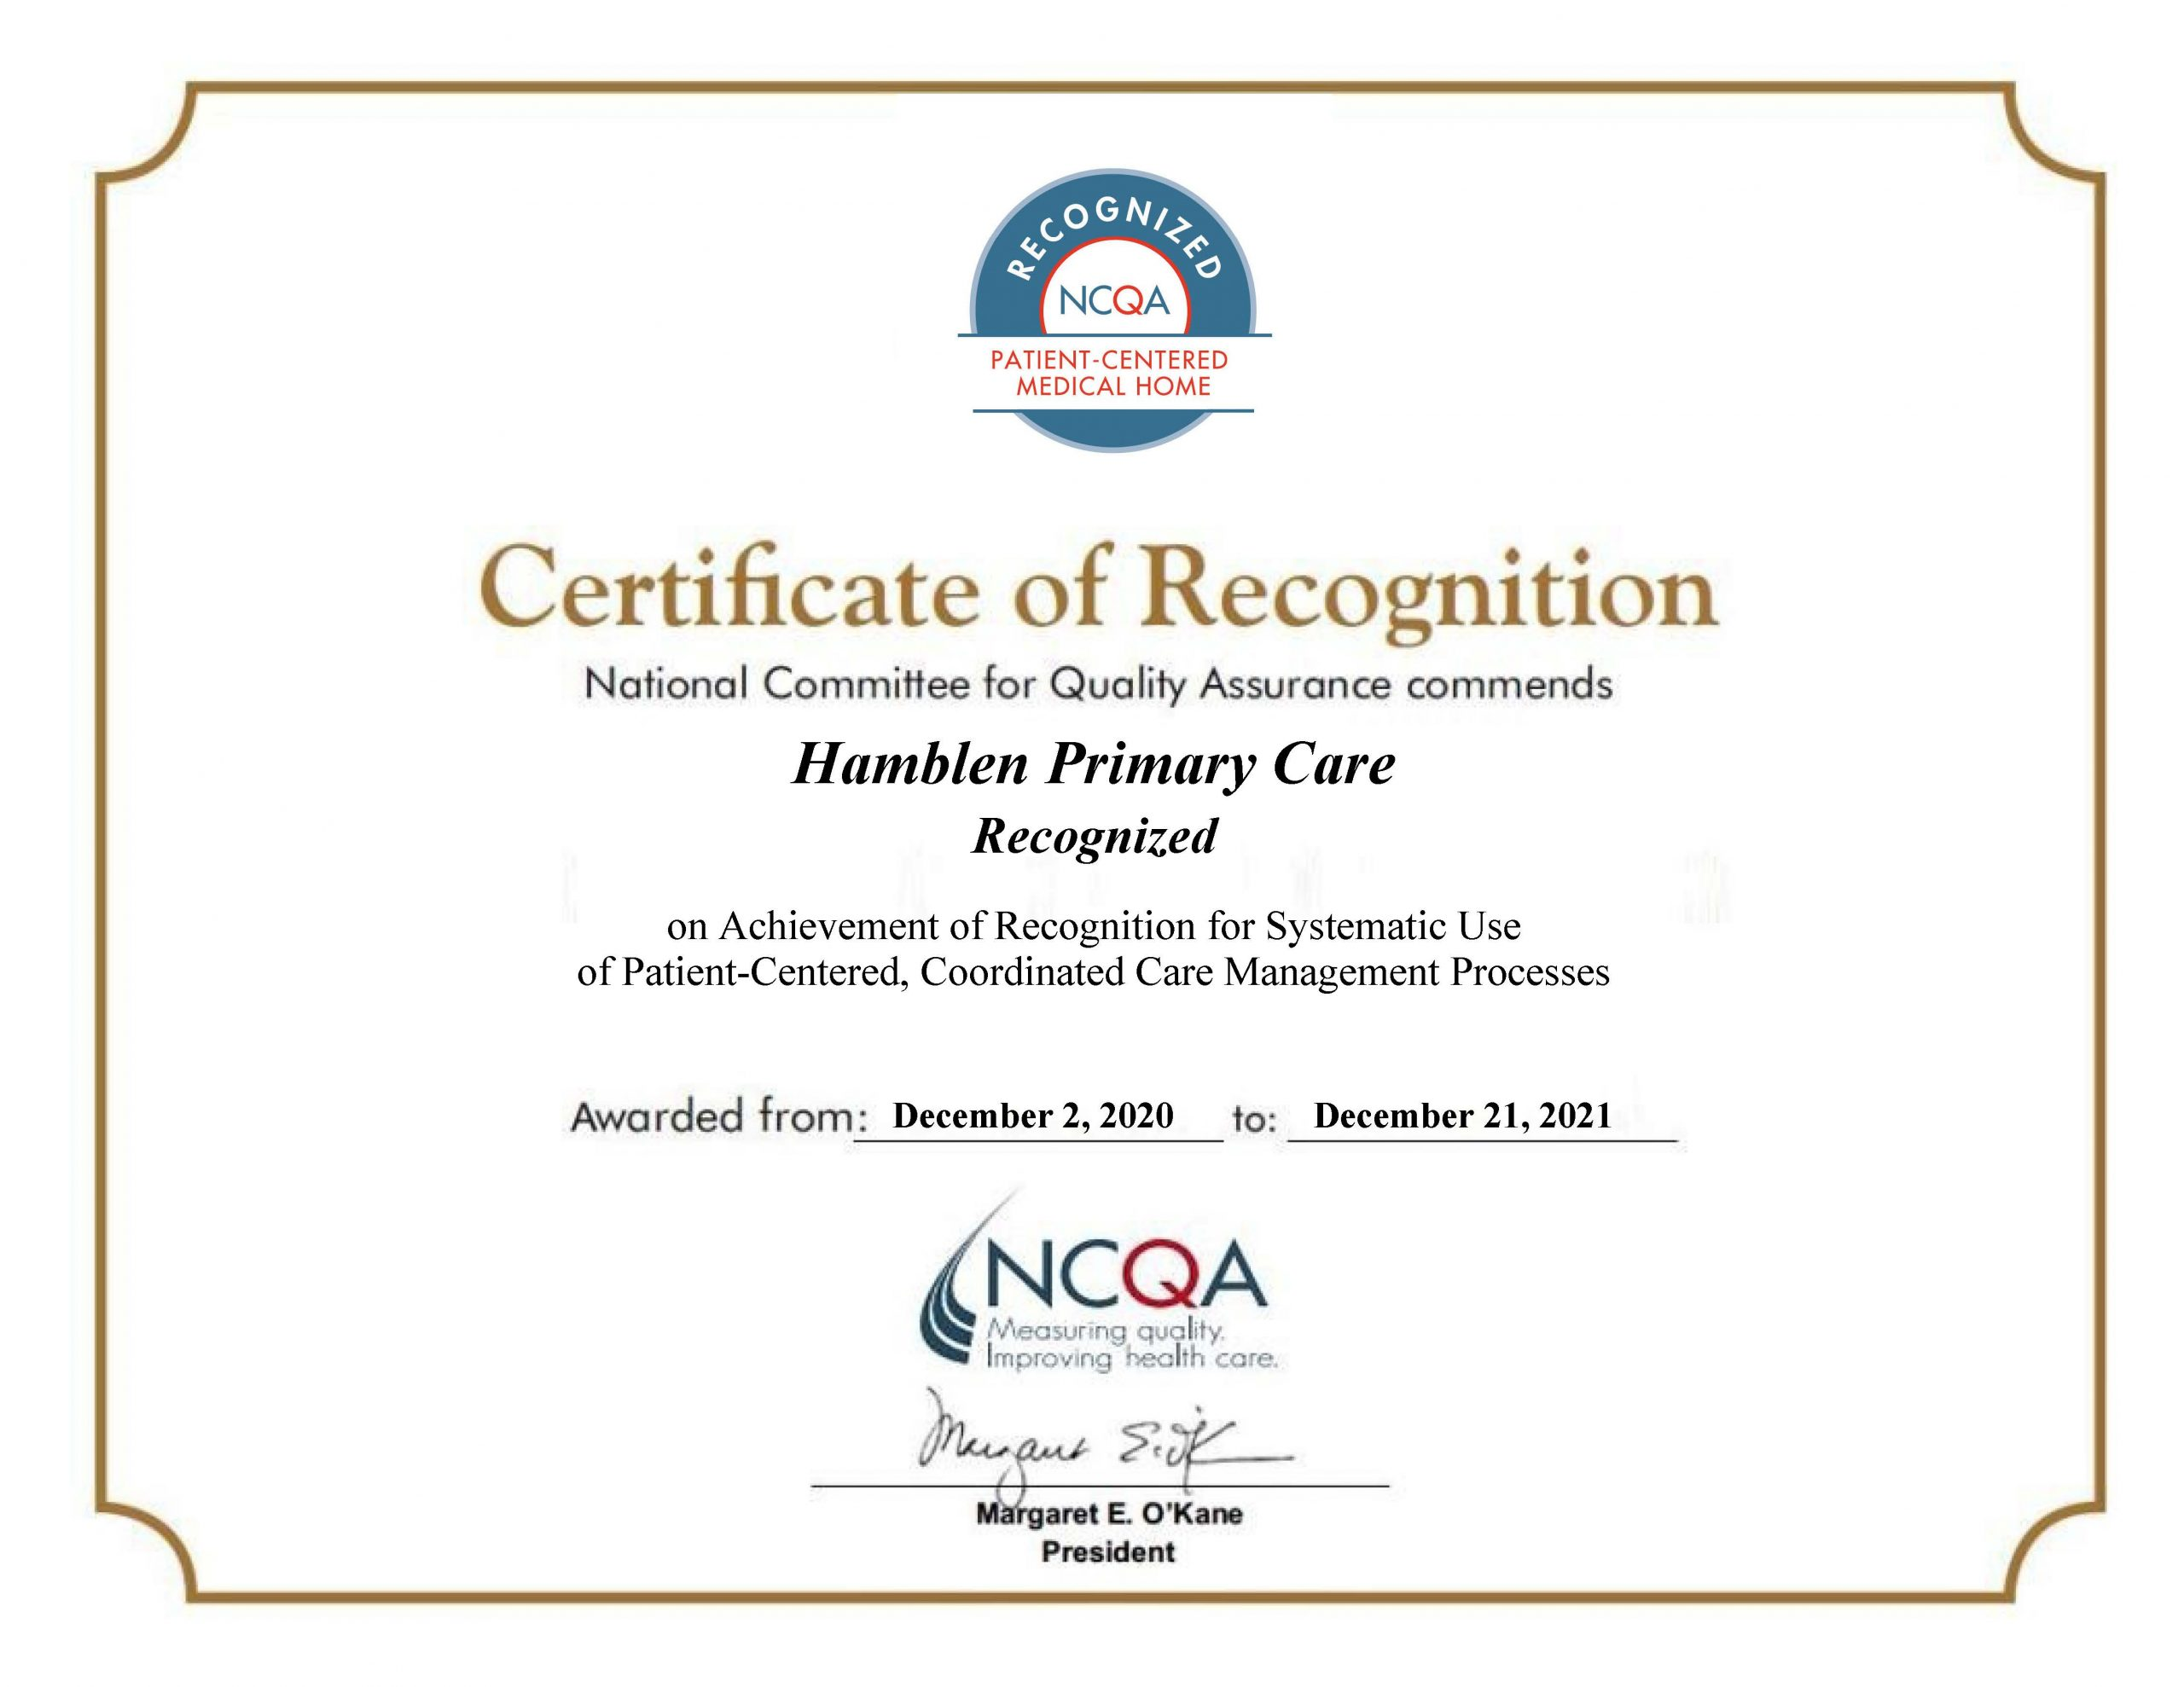 Hamblen Primary Care Recognized as PCMH